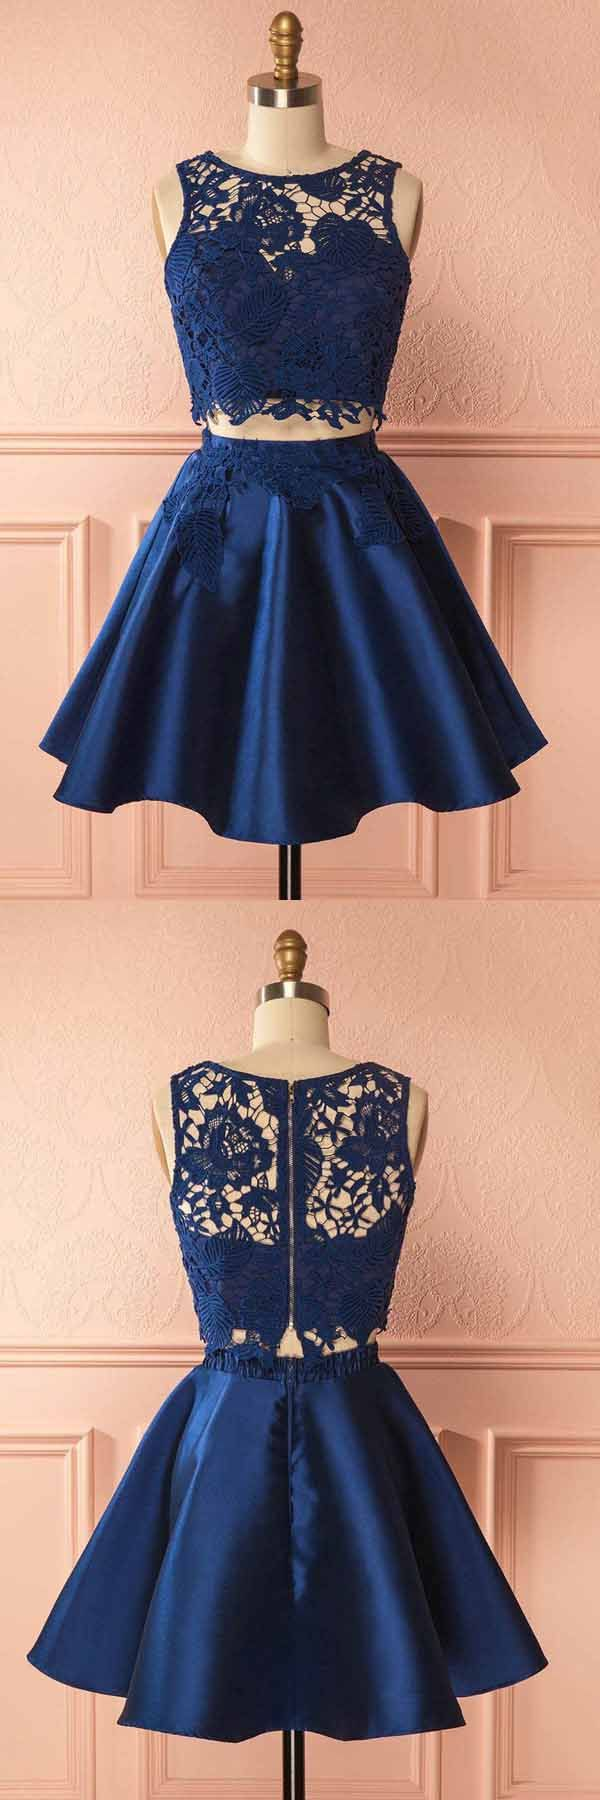 Two Piece Dark Blue Satin Homecoming Dress with Lace Appliques PG157